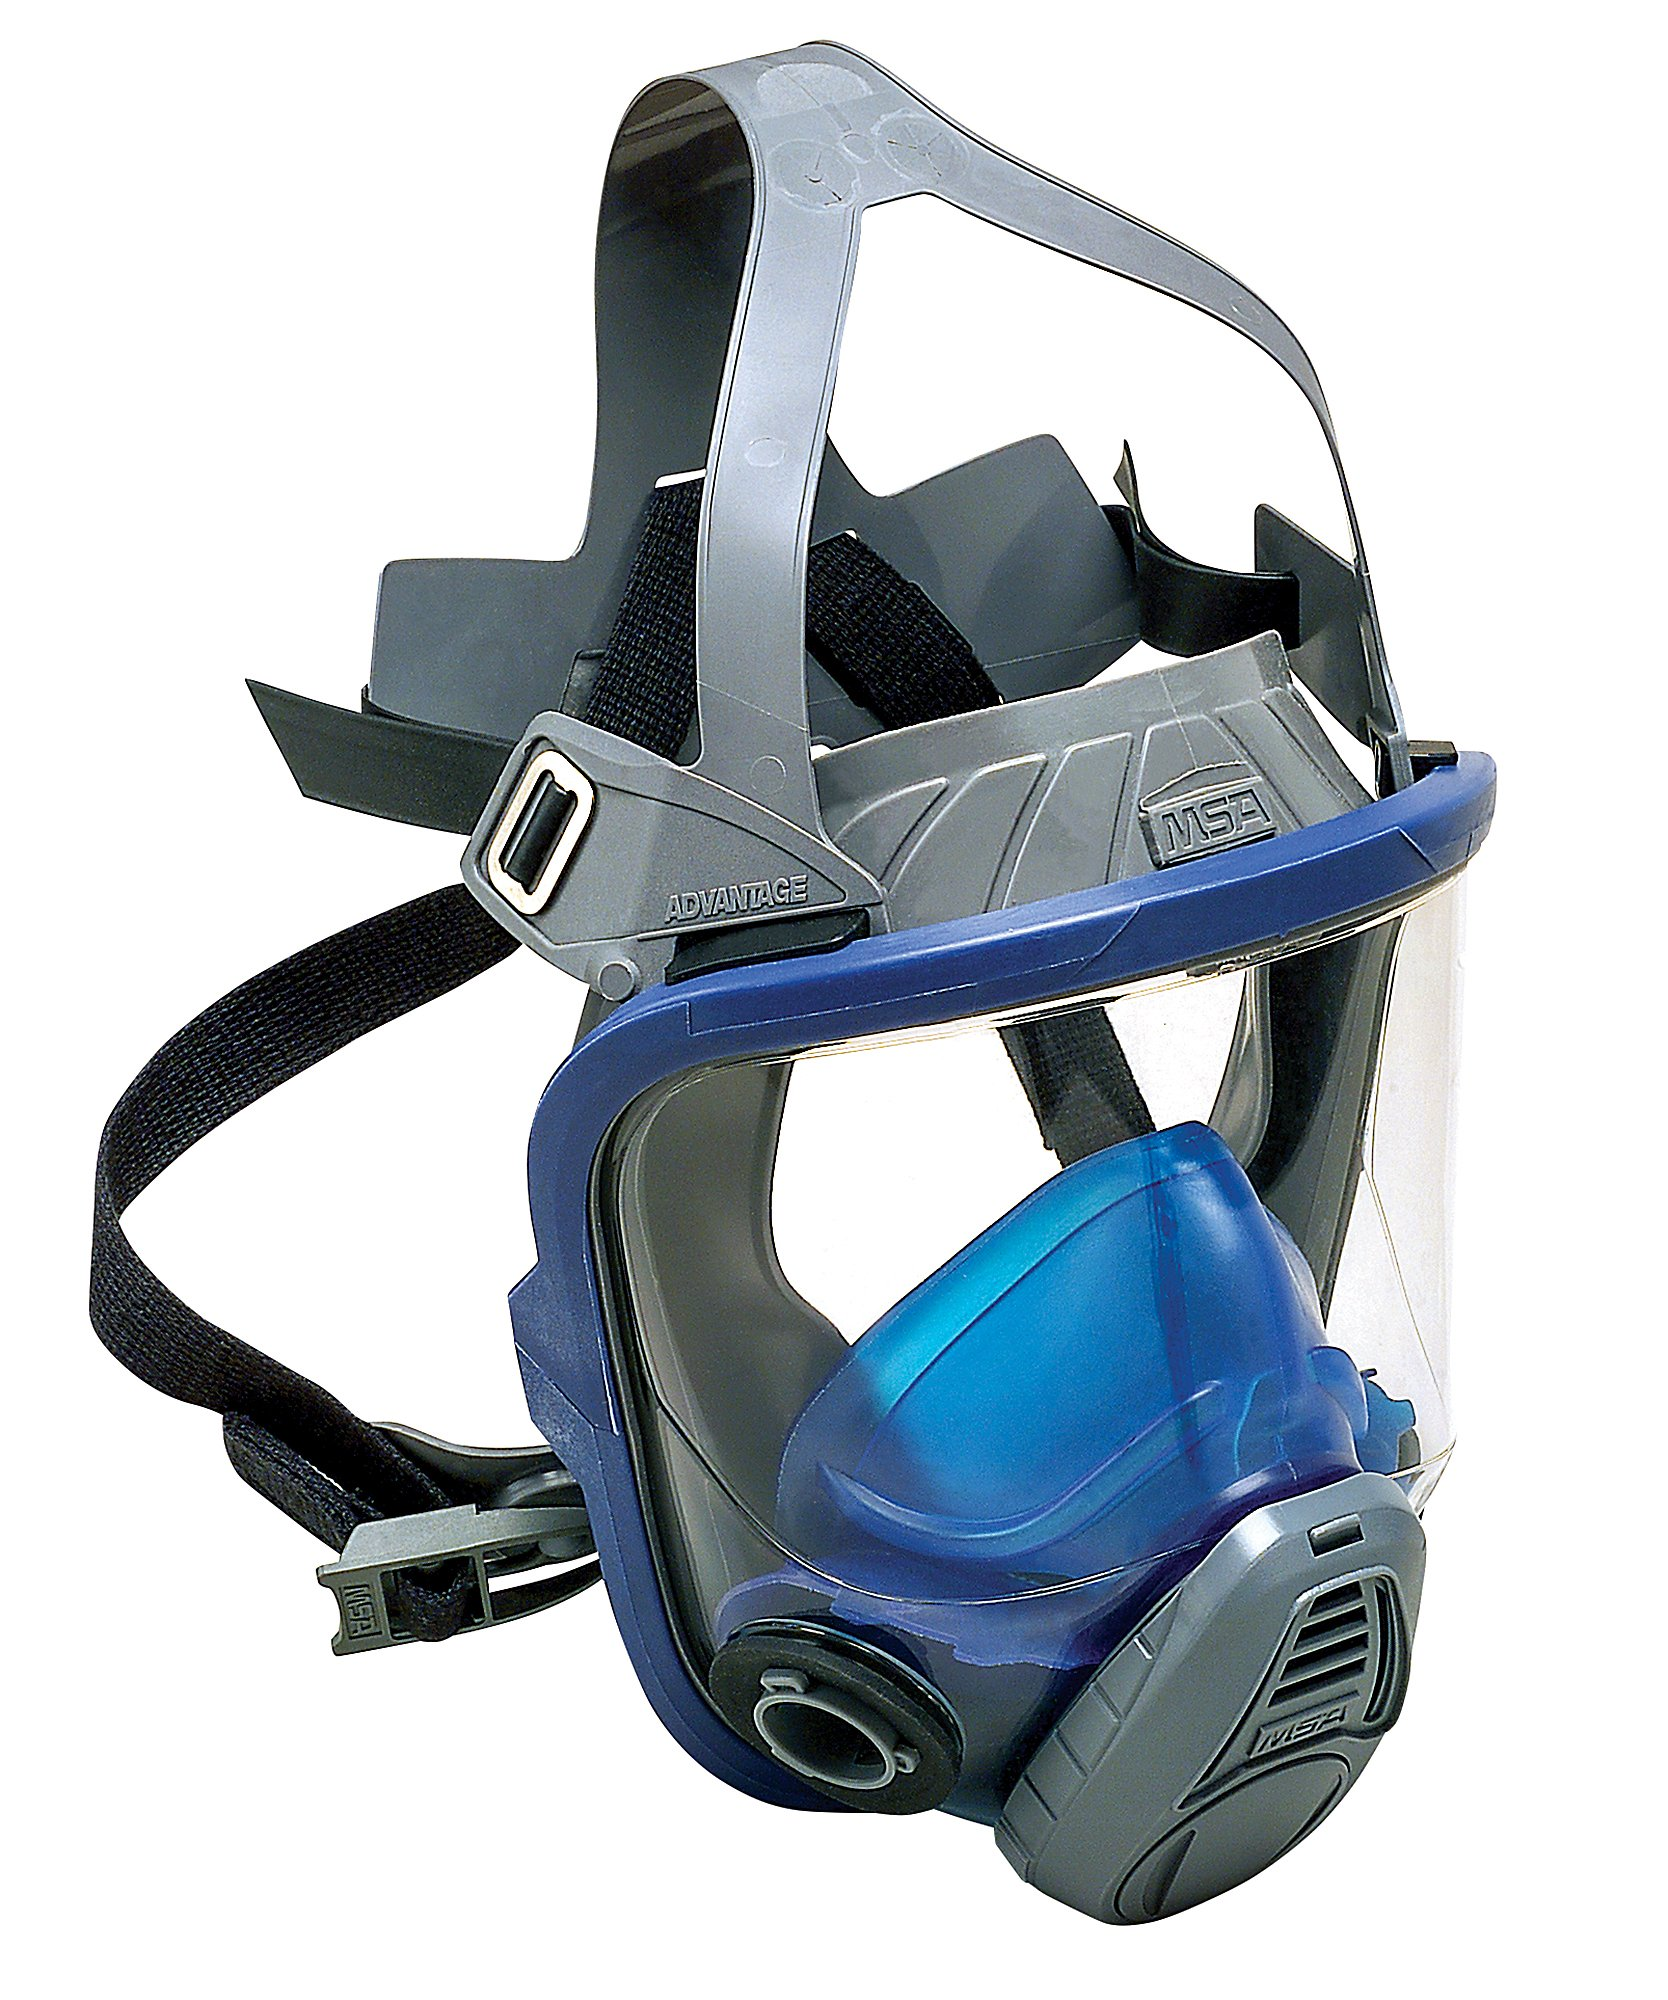 MSA Safety 10031341 Advantage 3200 Full-Facepiece Respirator with European Head Harness, Large